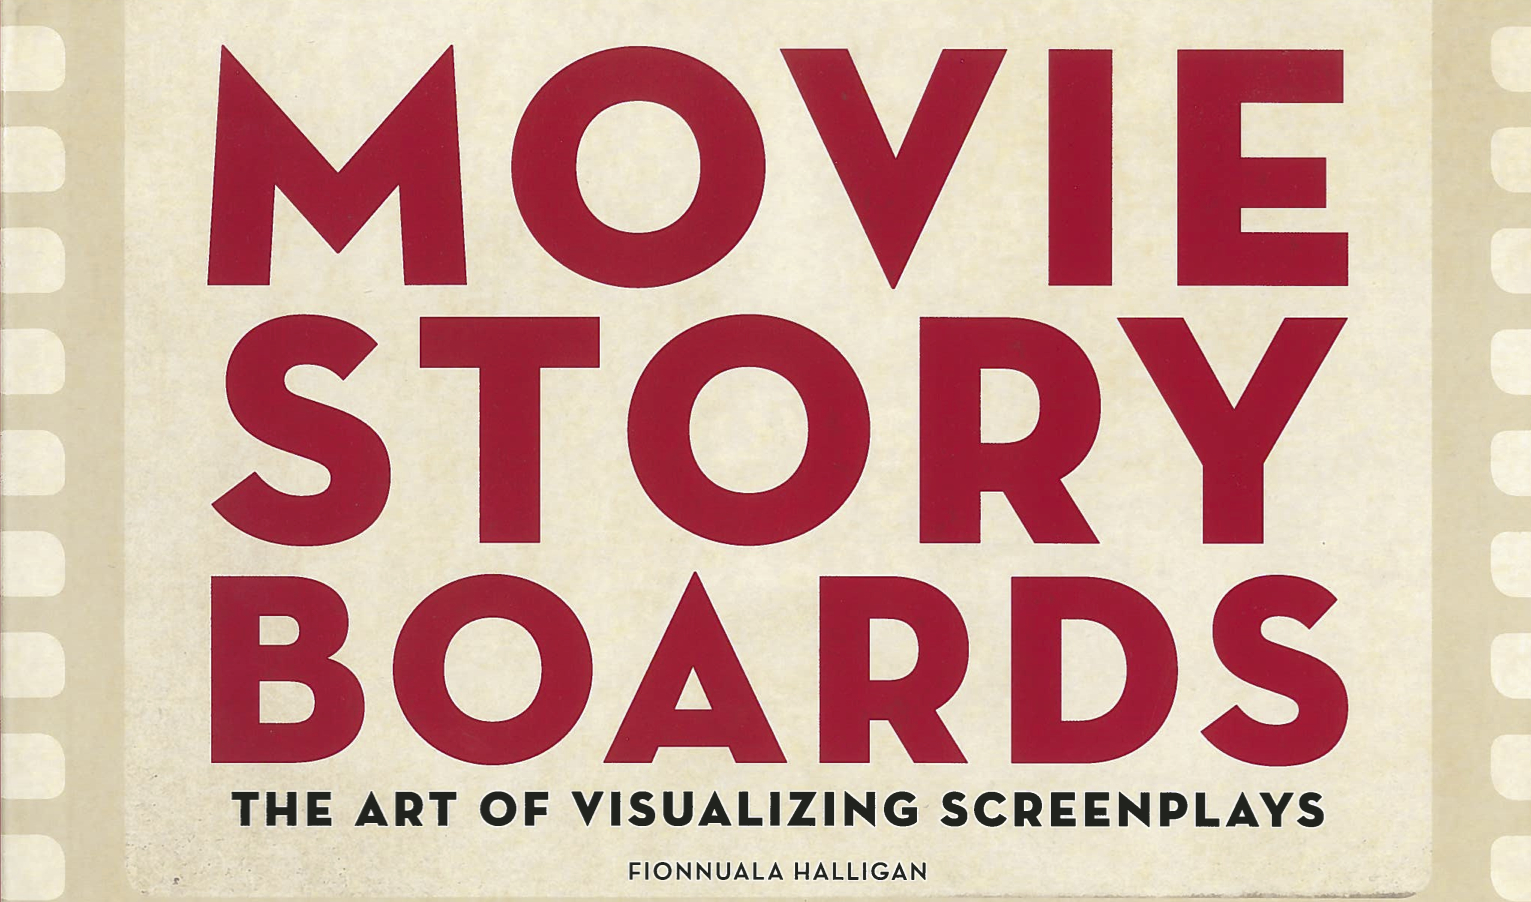 Movie Storyboards